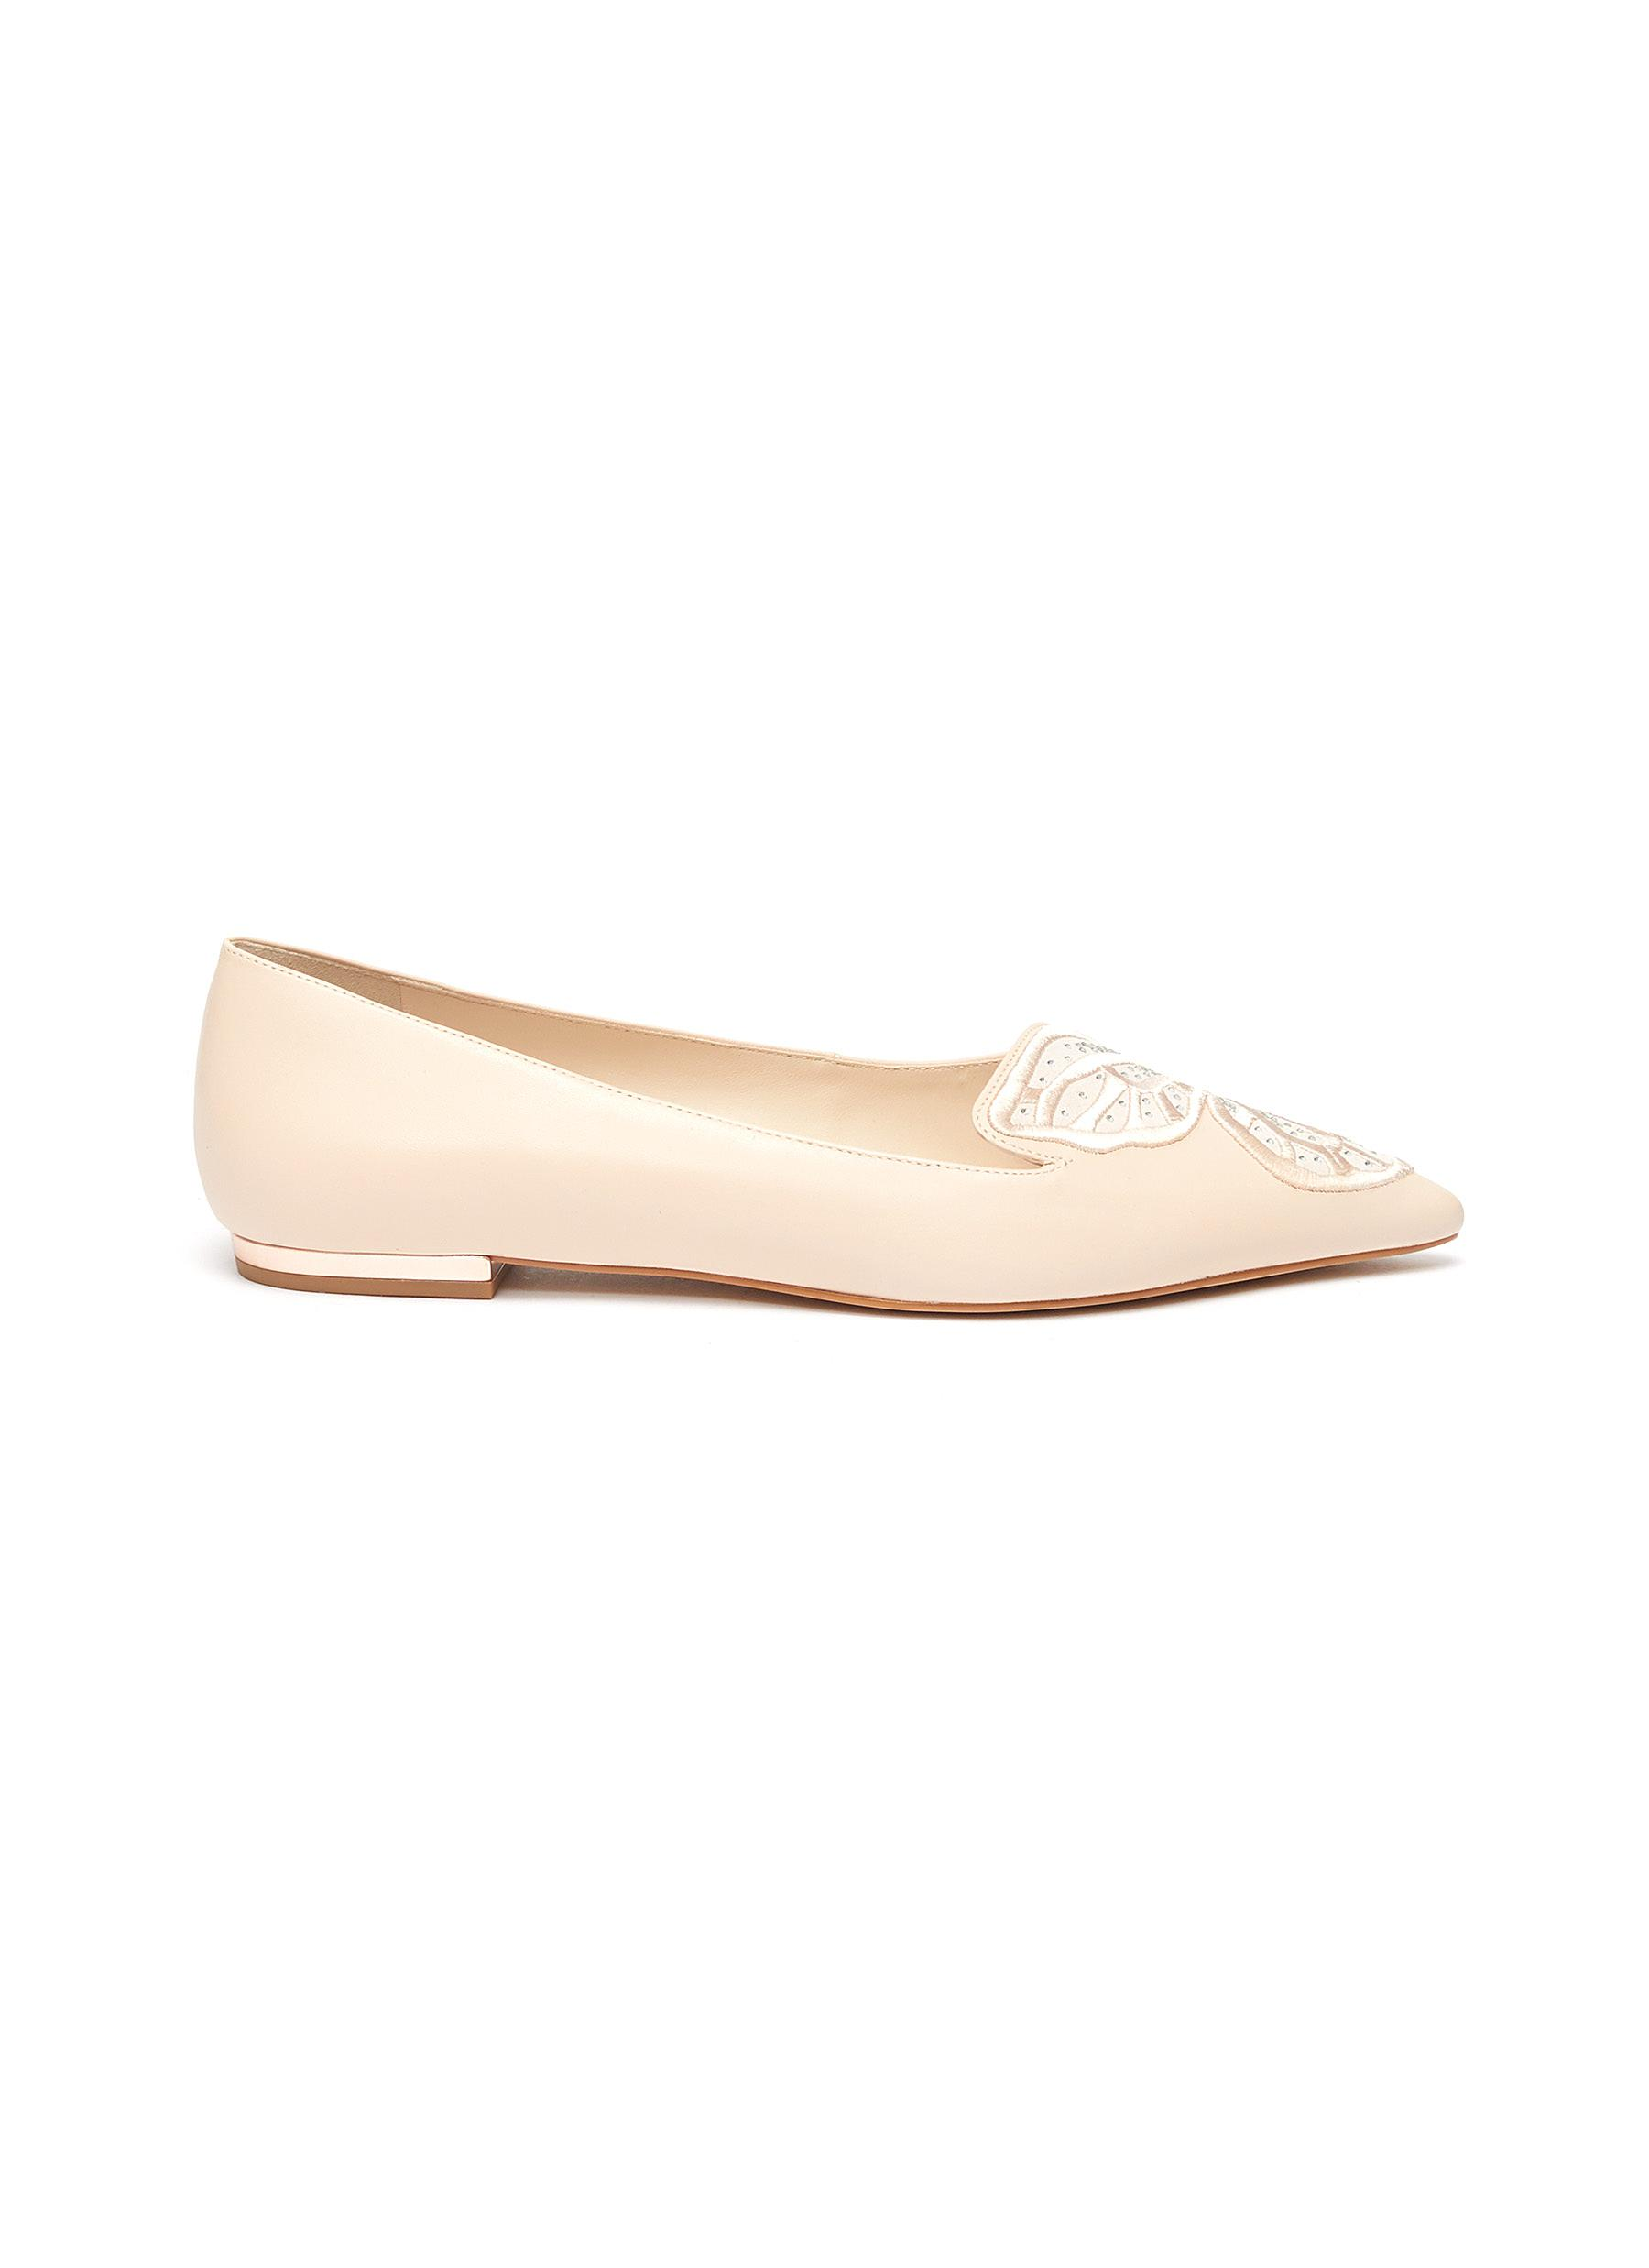 Sophia Webster Flats Bibi Butterfly wing embroidered leather flats